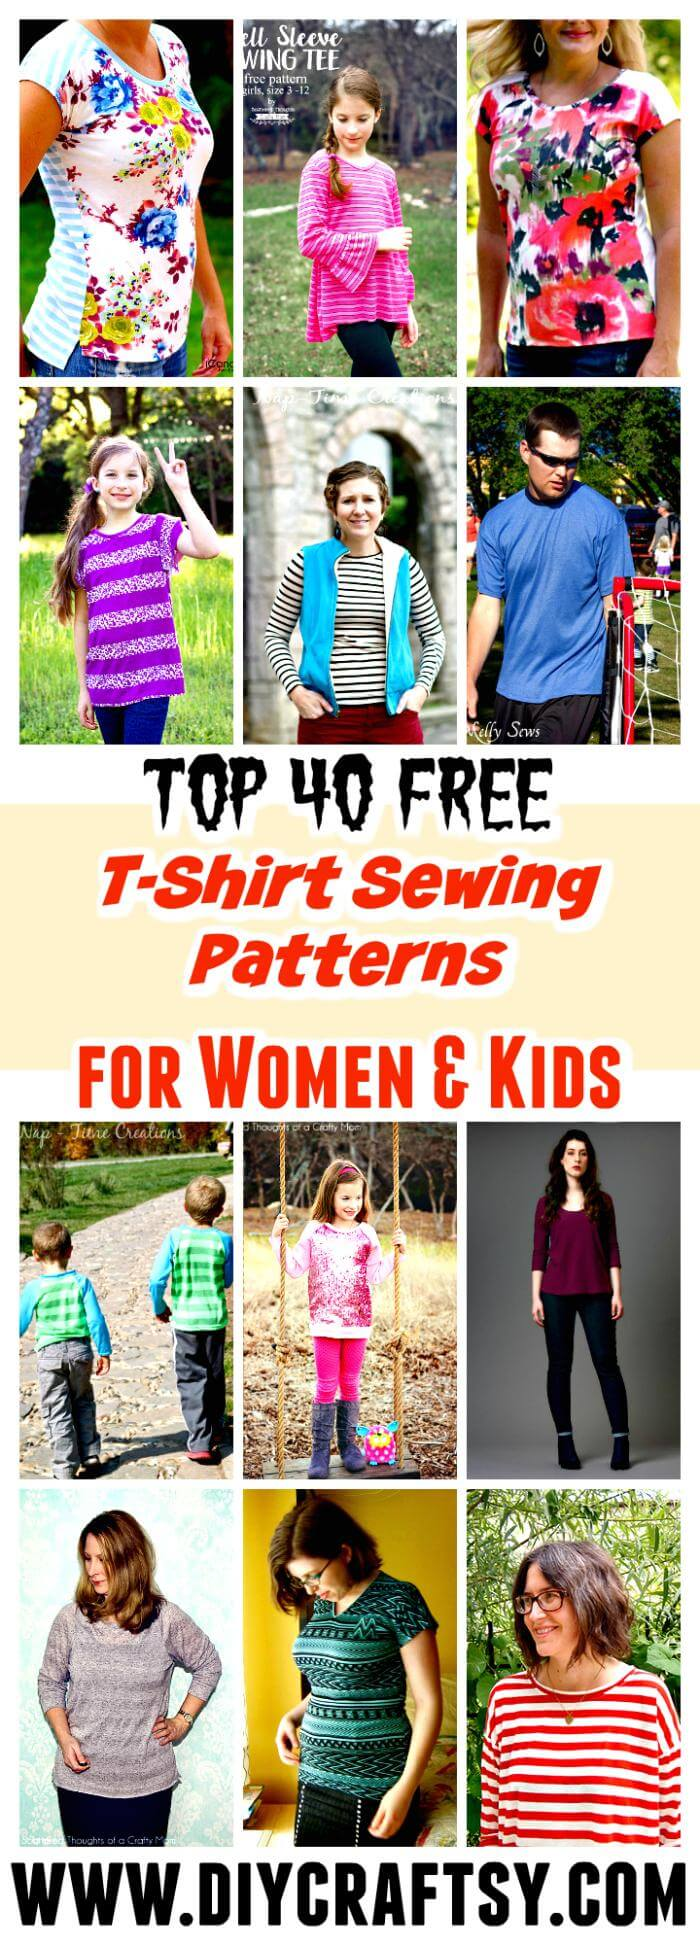 Top 40 Unique French Acrylic Nails: Top 40 Free T-Shirt Sewing Patterns For Women & Kids